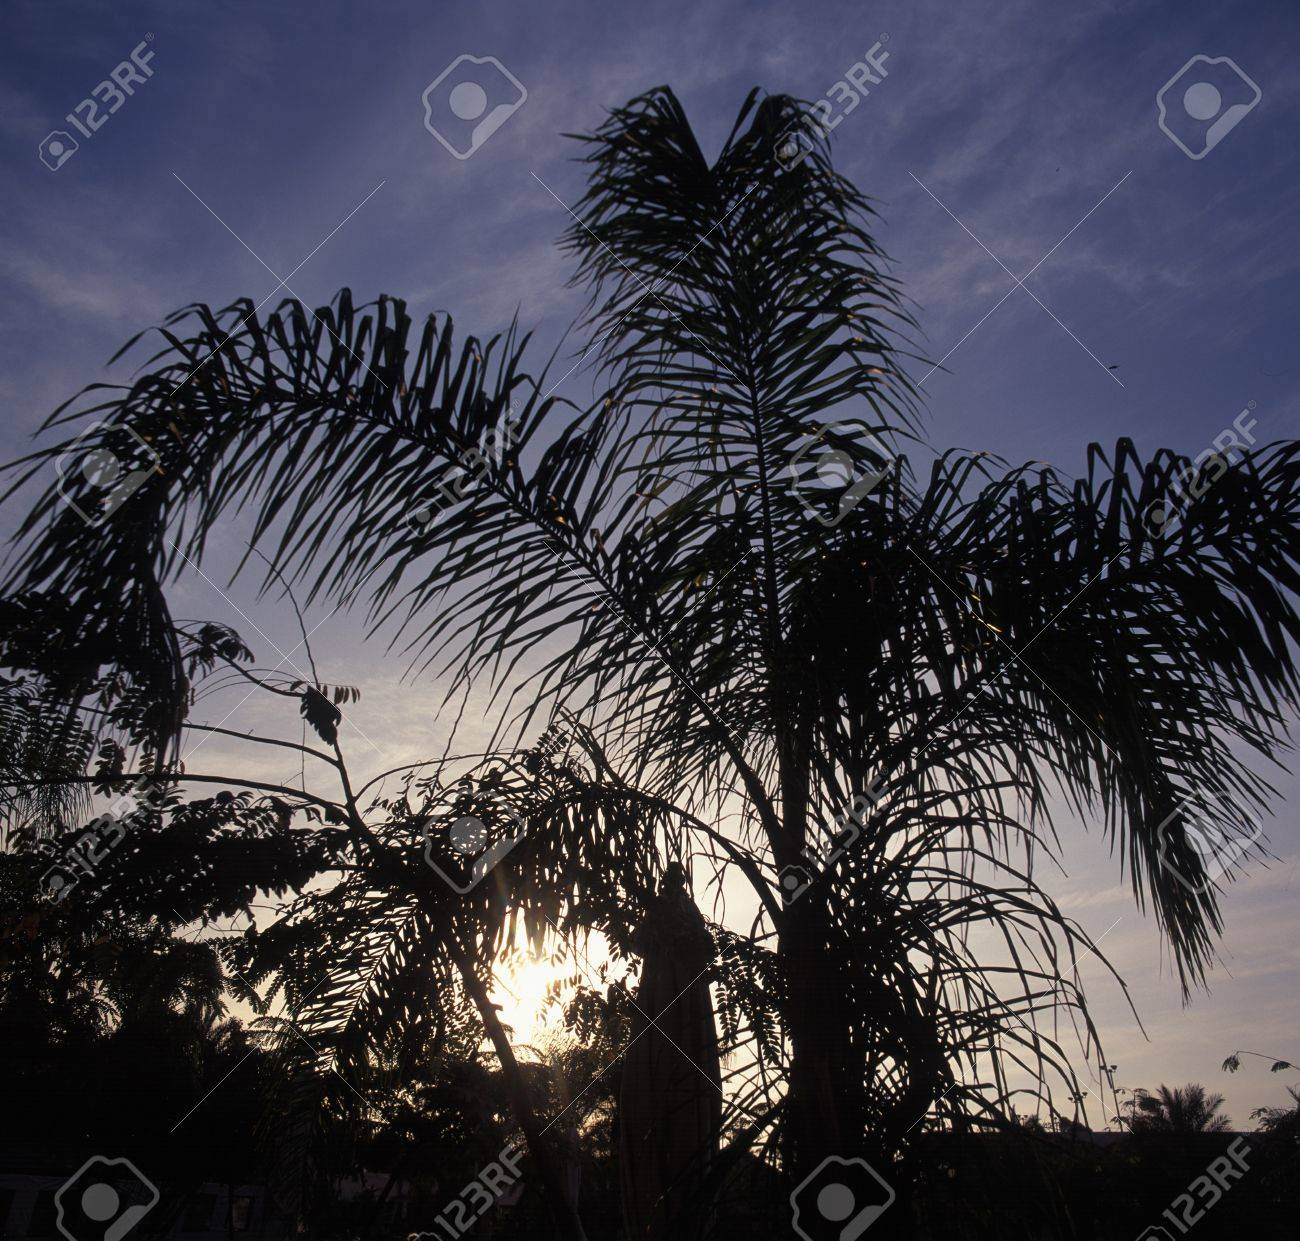 The Long Fronds Of A Tropical Palm Tree Silhouetted Against A